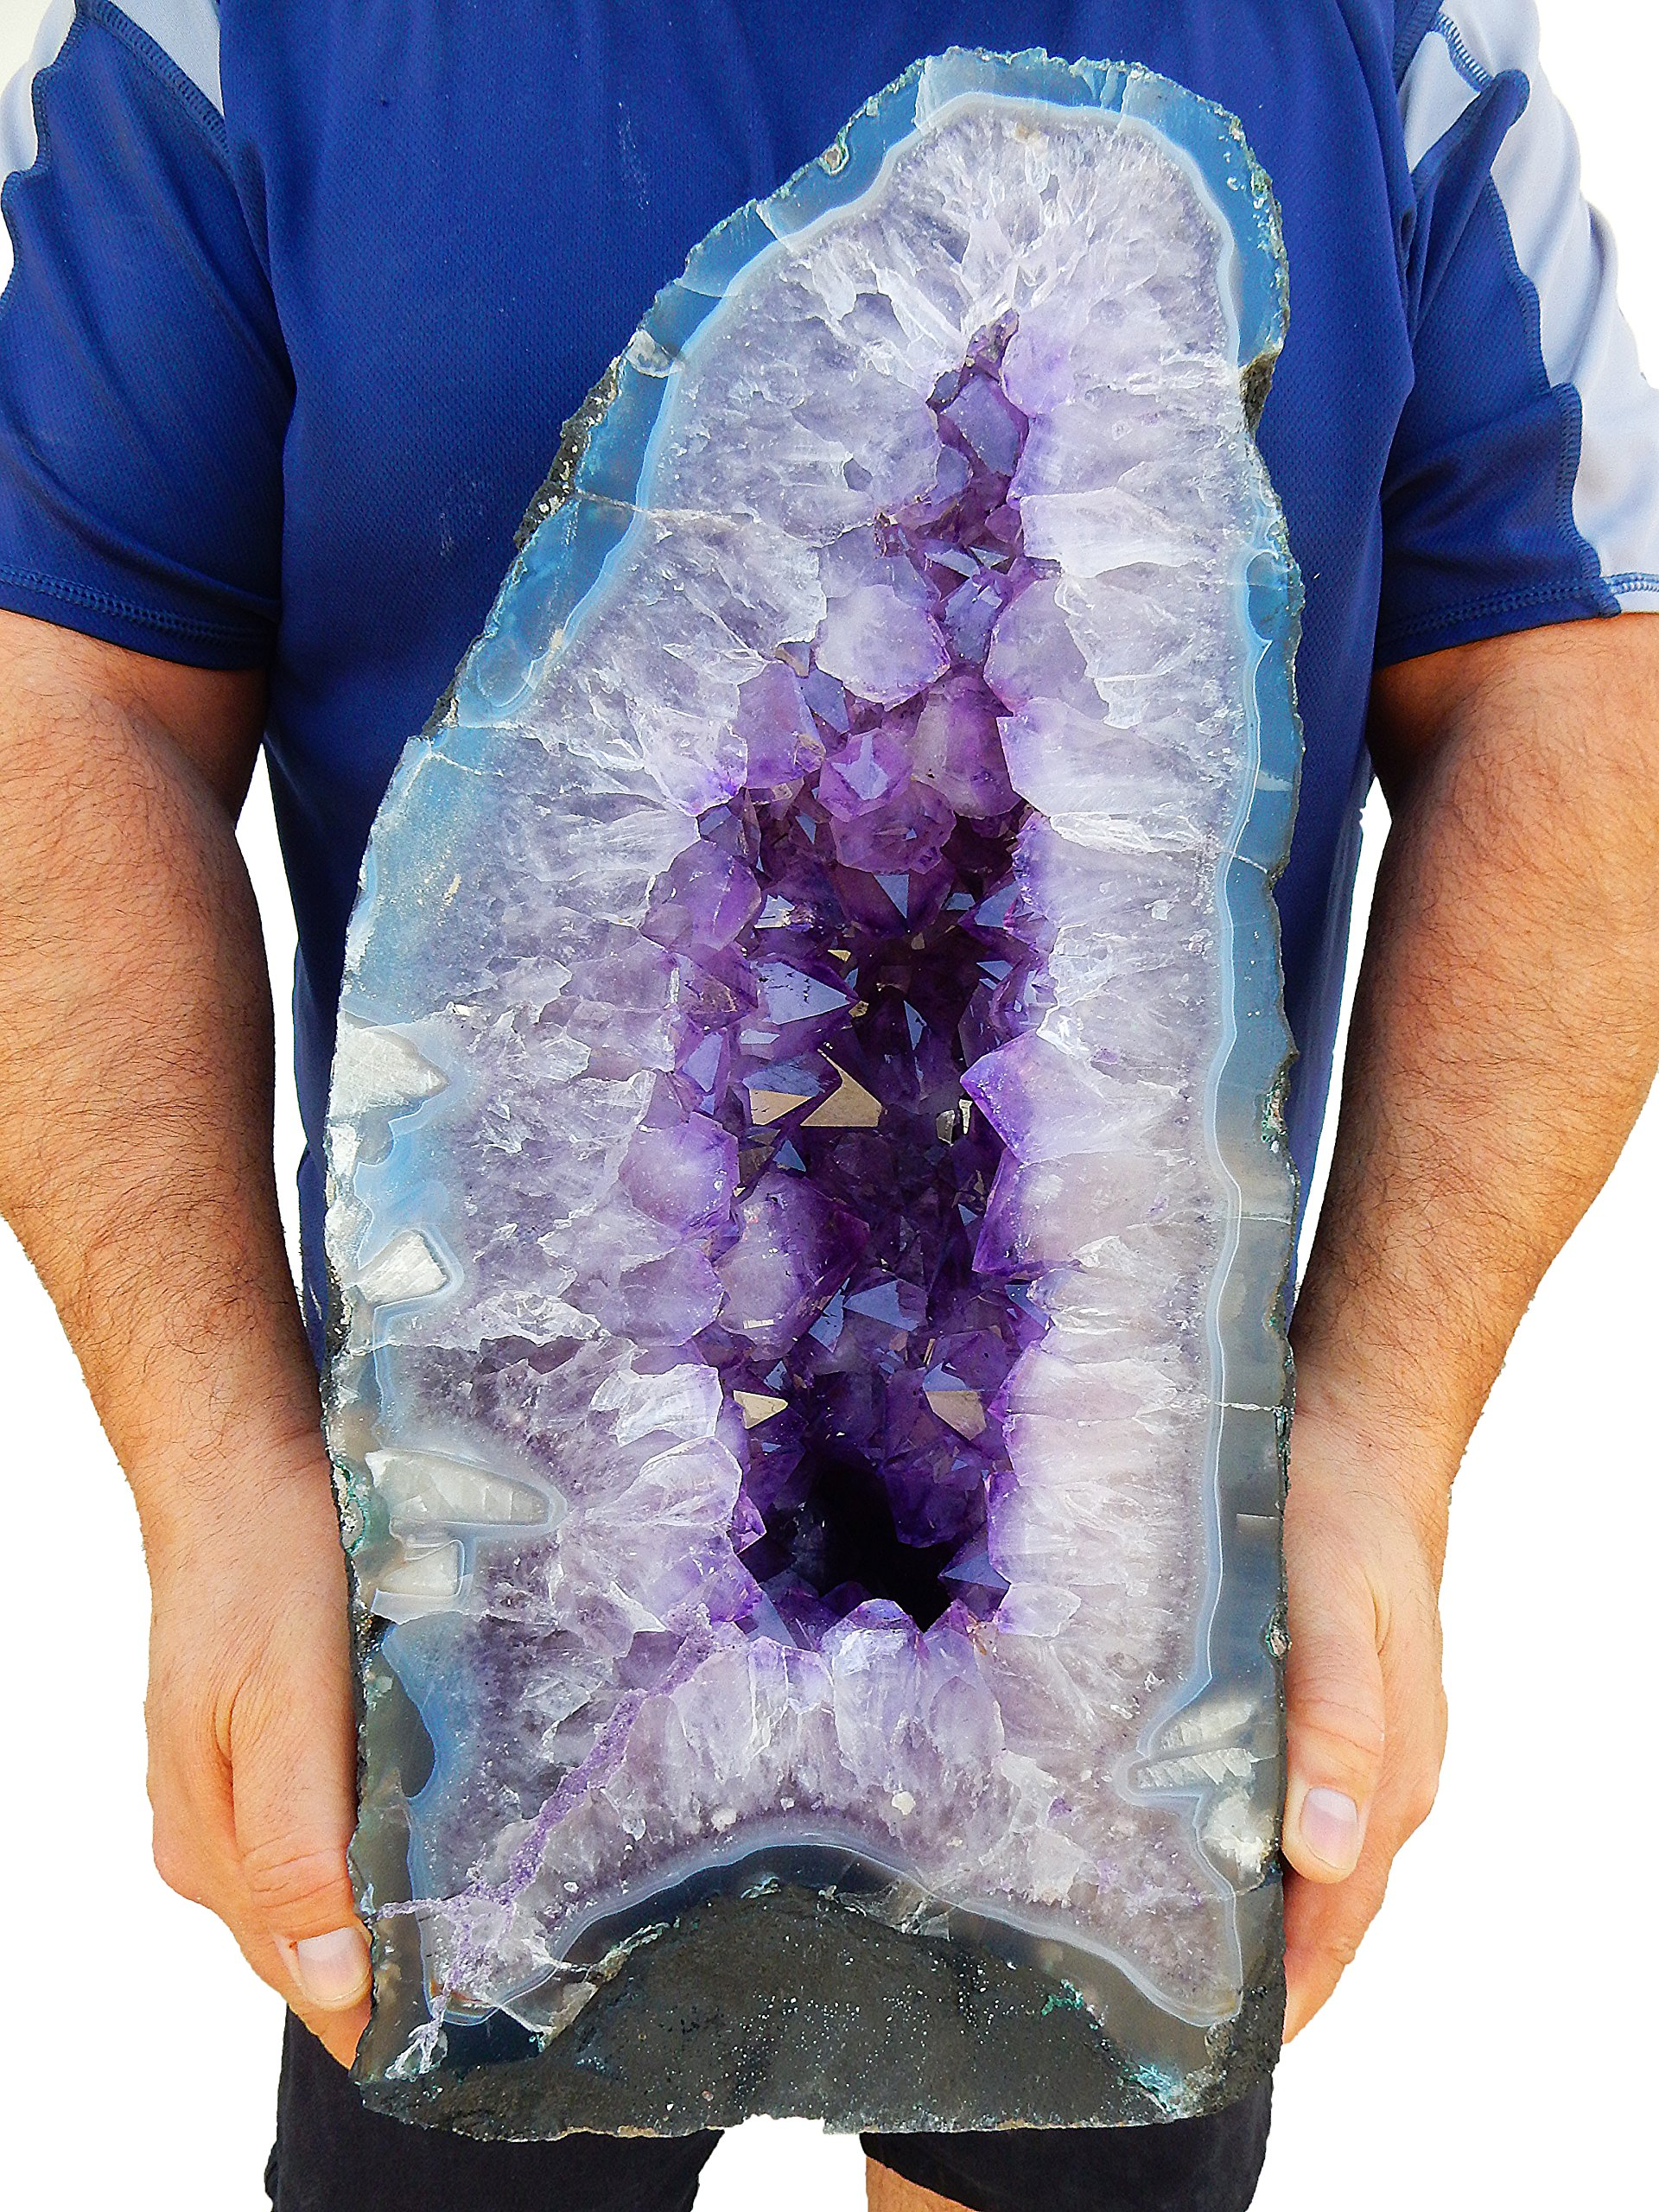 Beverly Oaks Large Amethyst Crystal Cathedral ~ Raw Amethyst Stone Geode ~ 54.27 lb Amazing Amethyst Cluster by (AC-52A)